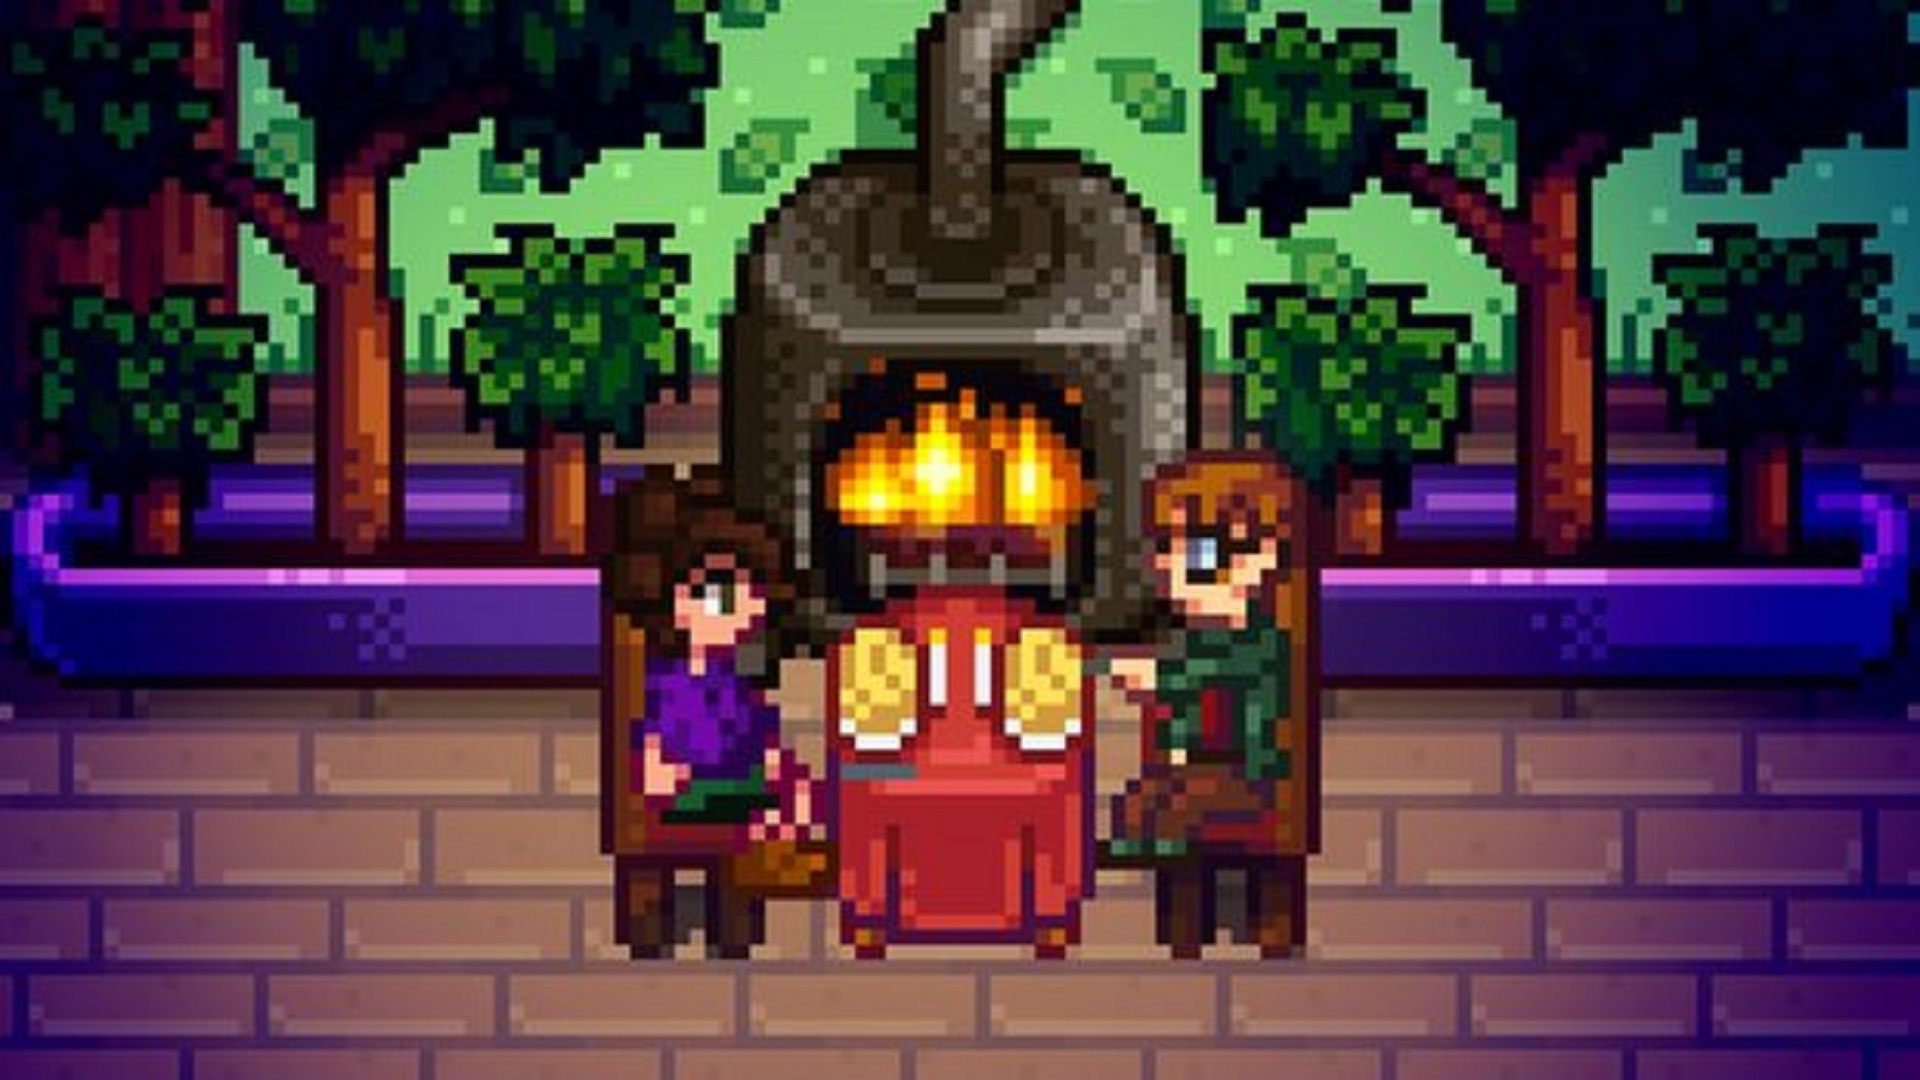 What do you want Stardew Valley 2 to be? | GamesRadar+